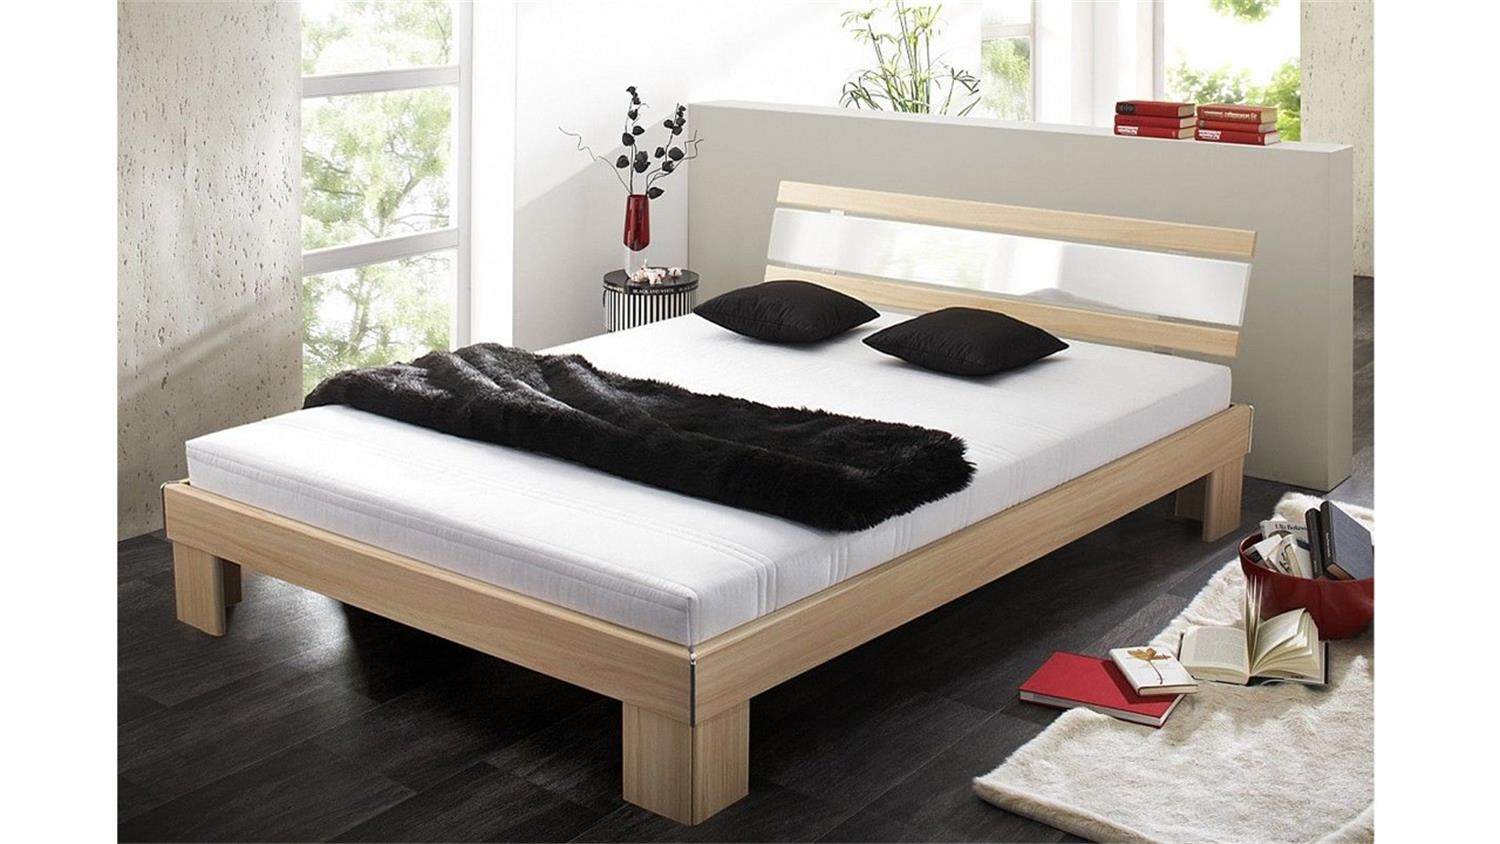 futonbett rhone bett buche wei hochglanz mit rollrost matratze 140. Black Bedroom Furniture Sets. Home Design Ideas